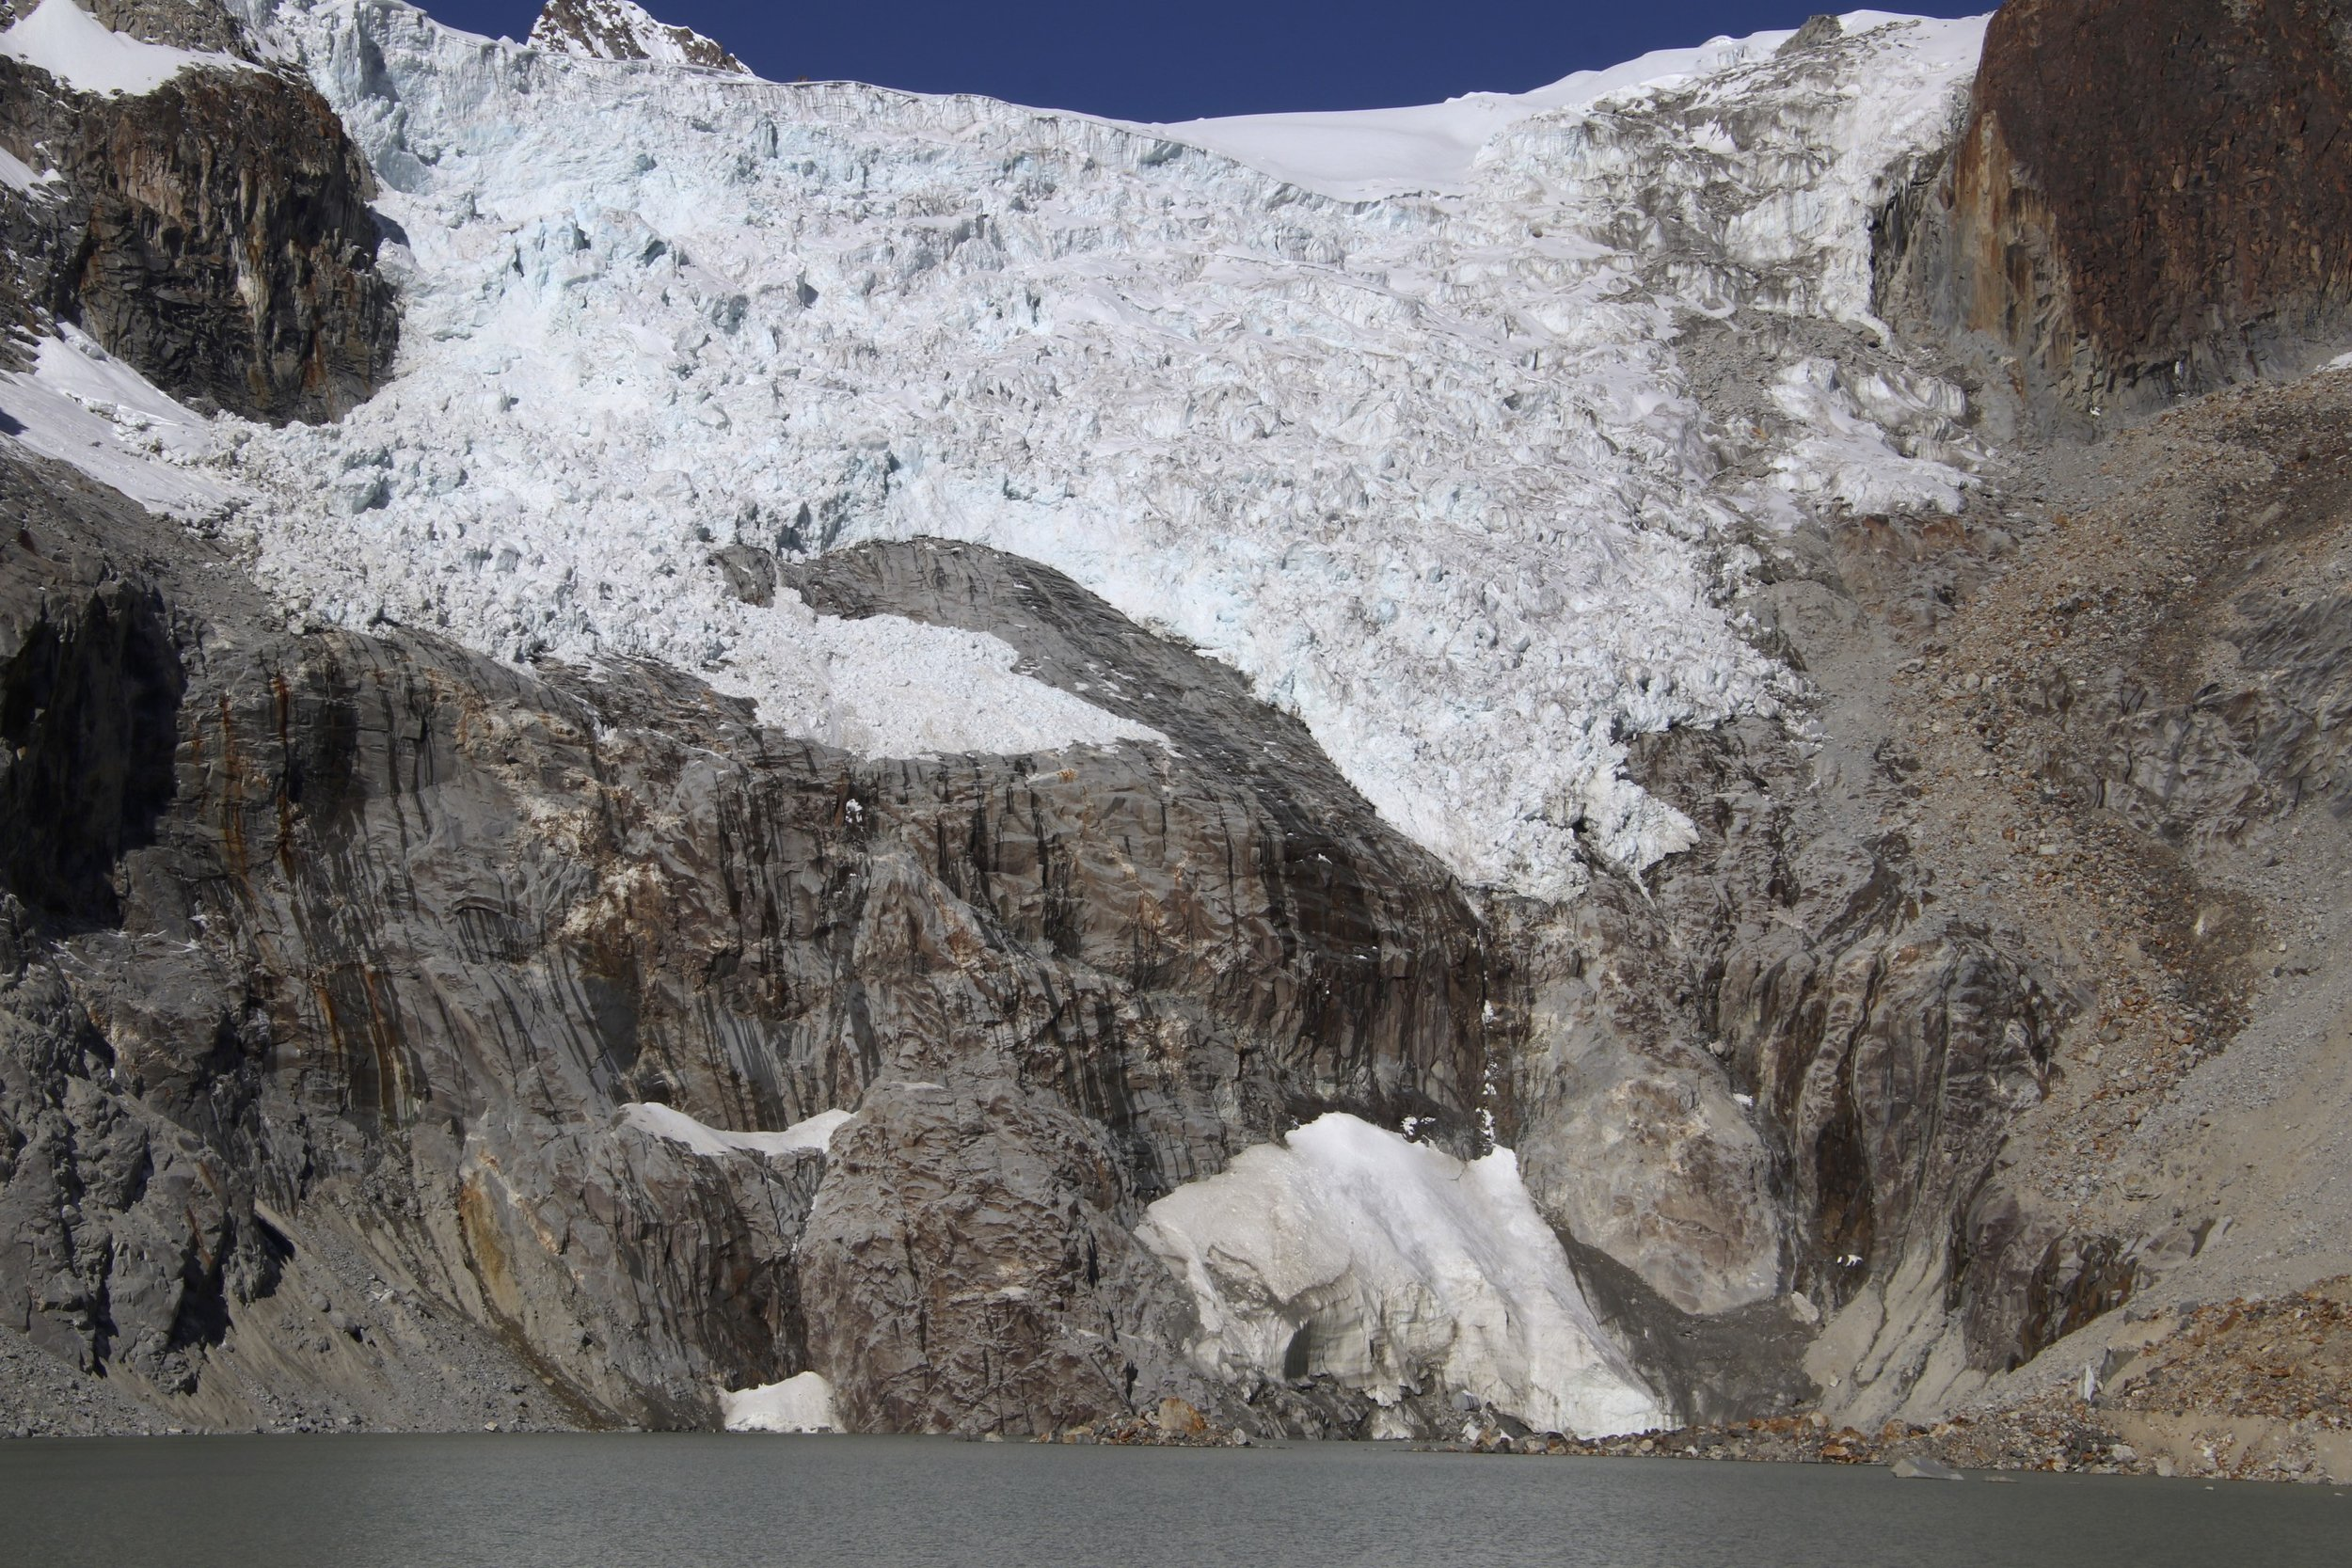 Compare the glacial retreat to  my photo from 2010  (click)! The icefall between Illampu and Ancohuma. In a decade, the glacier moved back considerably. The melting of the glaciers makes the climbing more difficult as crevasses open up making routes impassible.